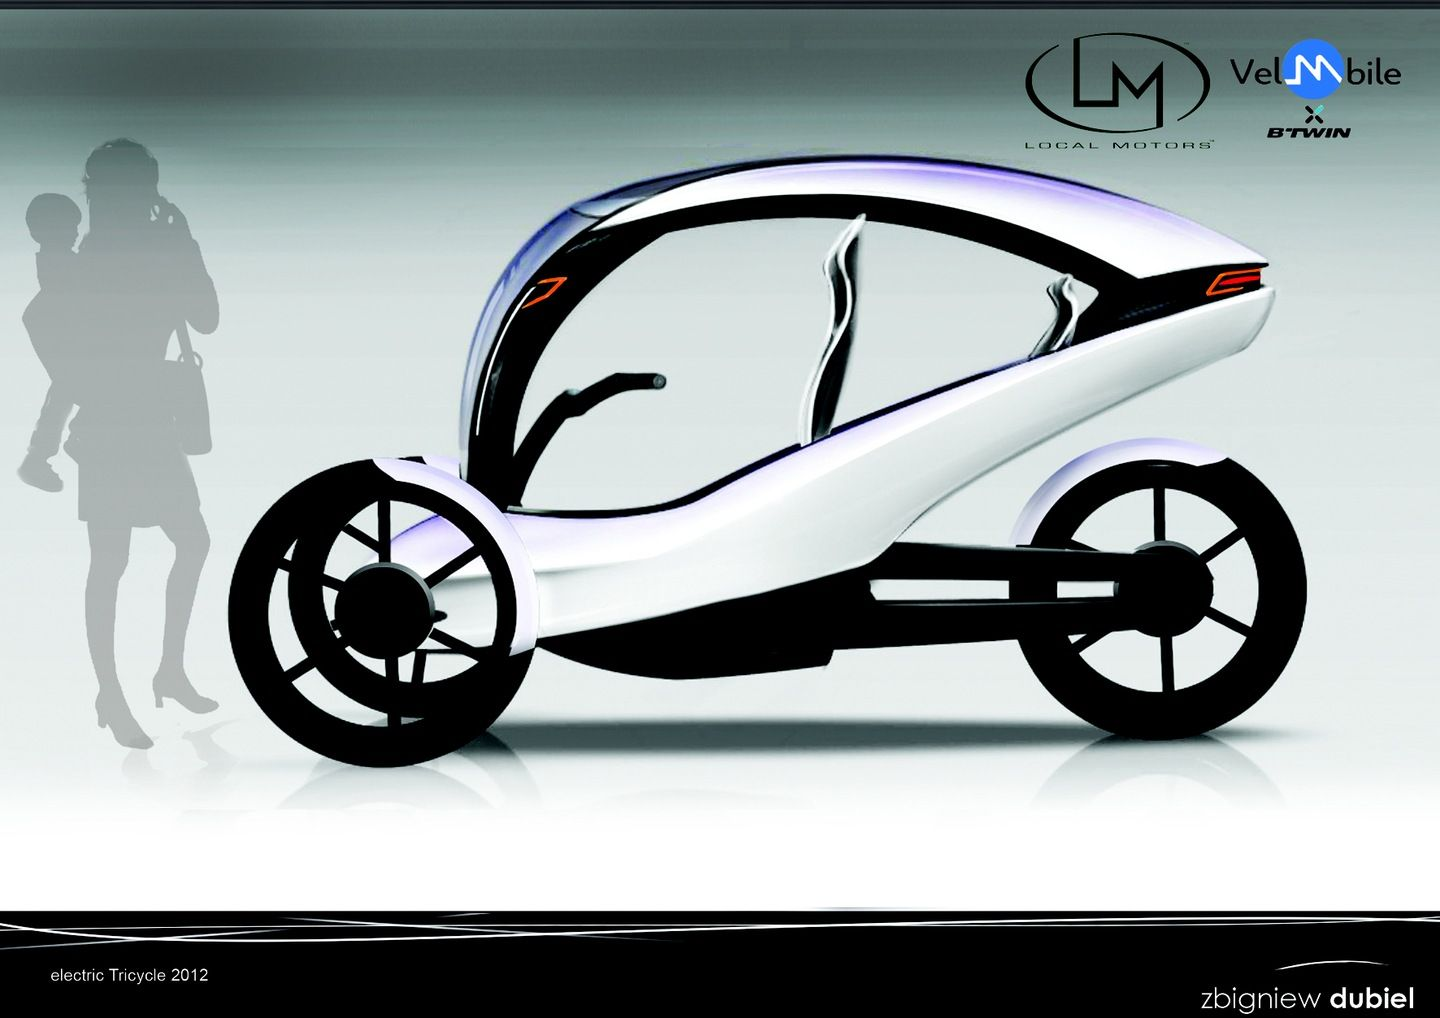 Electric Tricycle Design With Focus On Reliability Accessibility The Bmw I1 Is An Singleseater Trikecar Concept By Designer And Safety For One Adult Special Access Baby